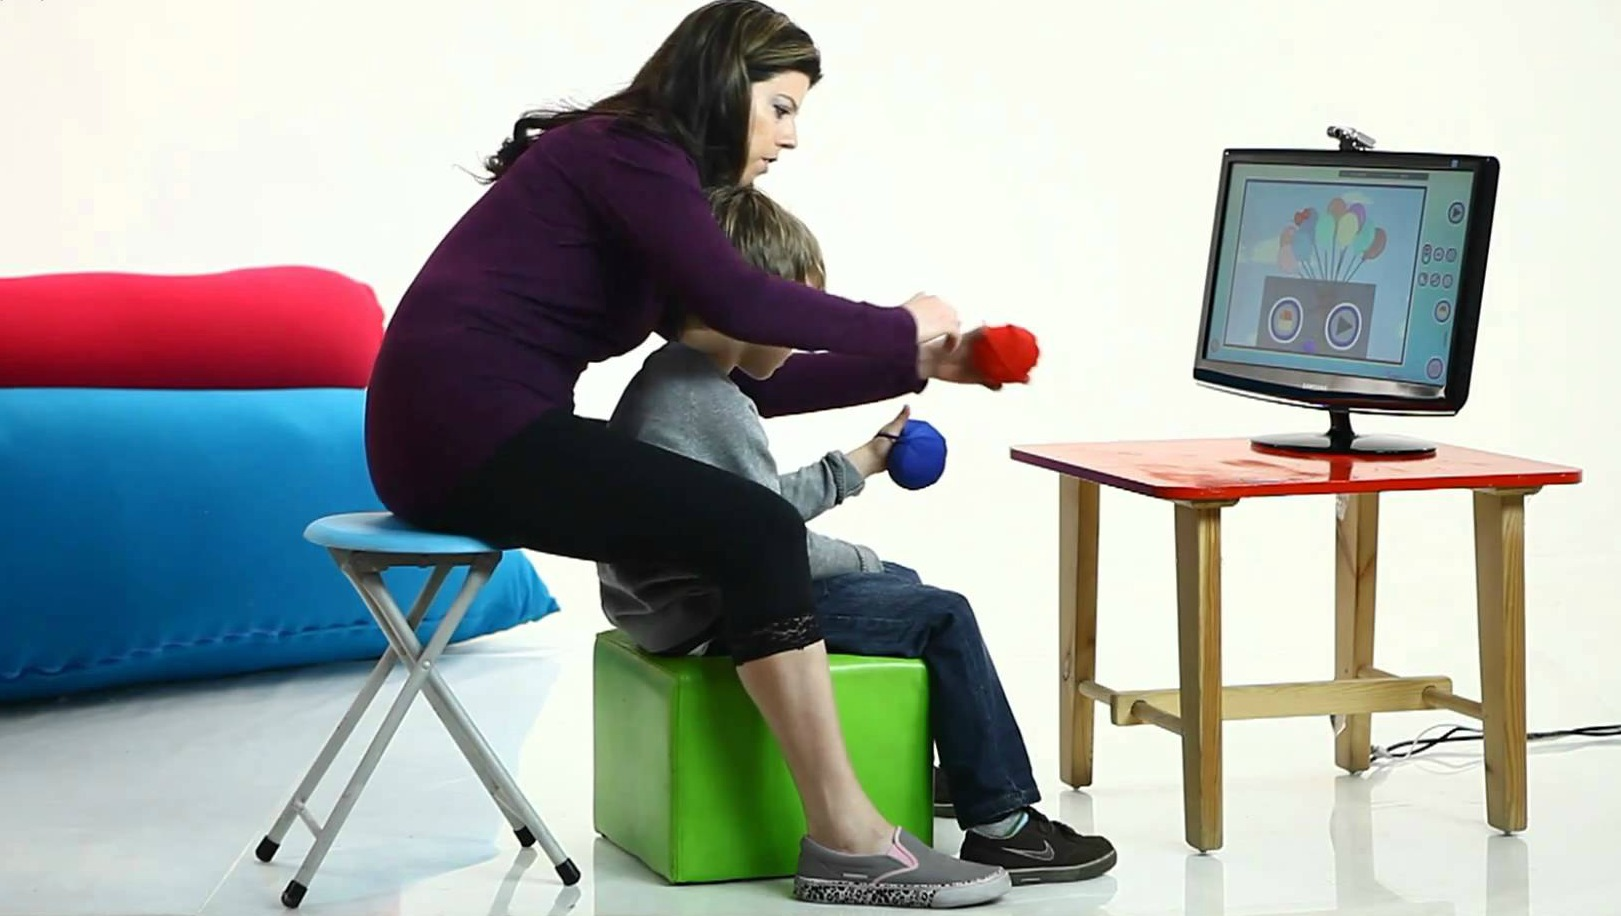 timocco helps children improve motor control and cognitive